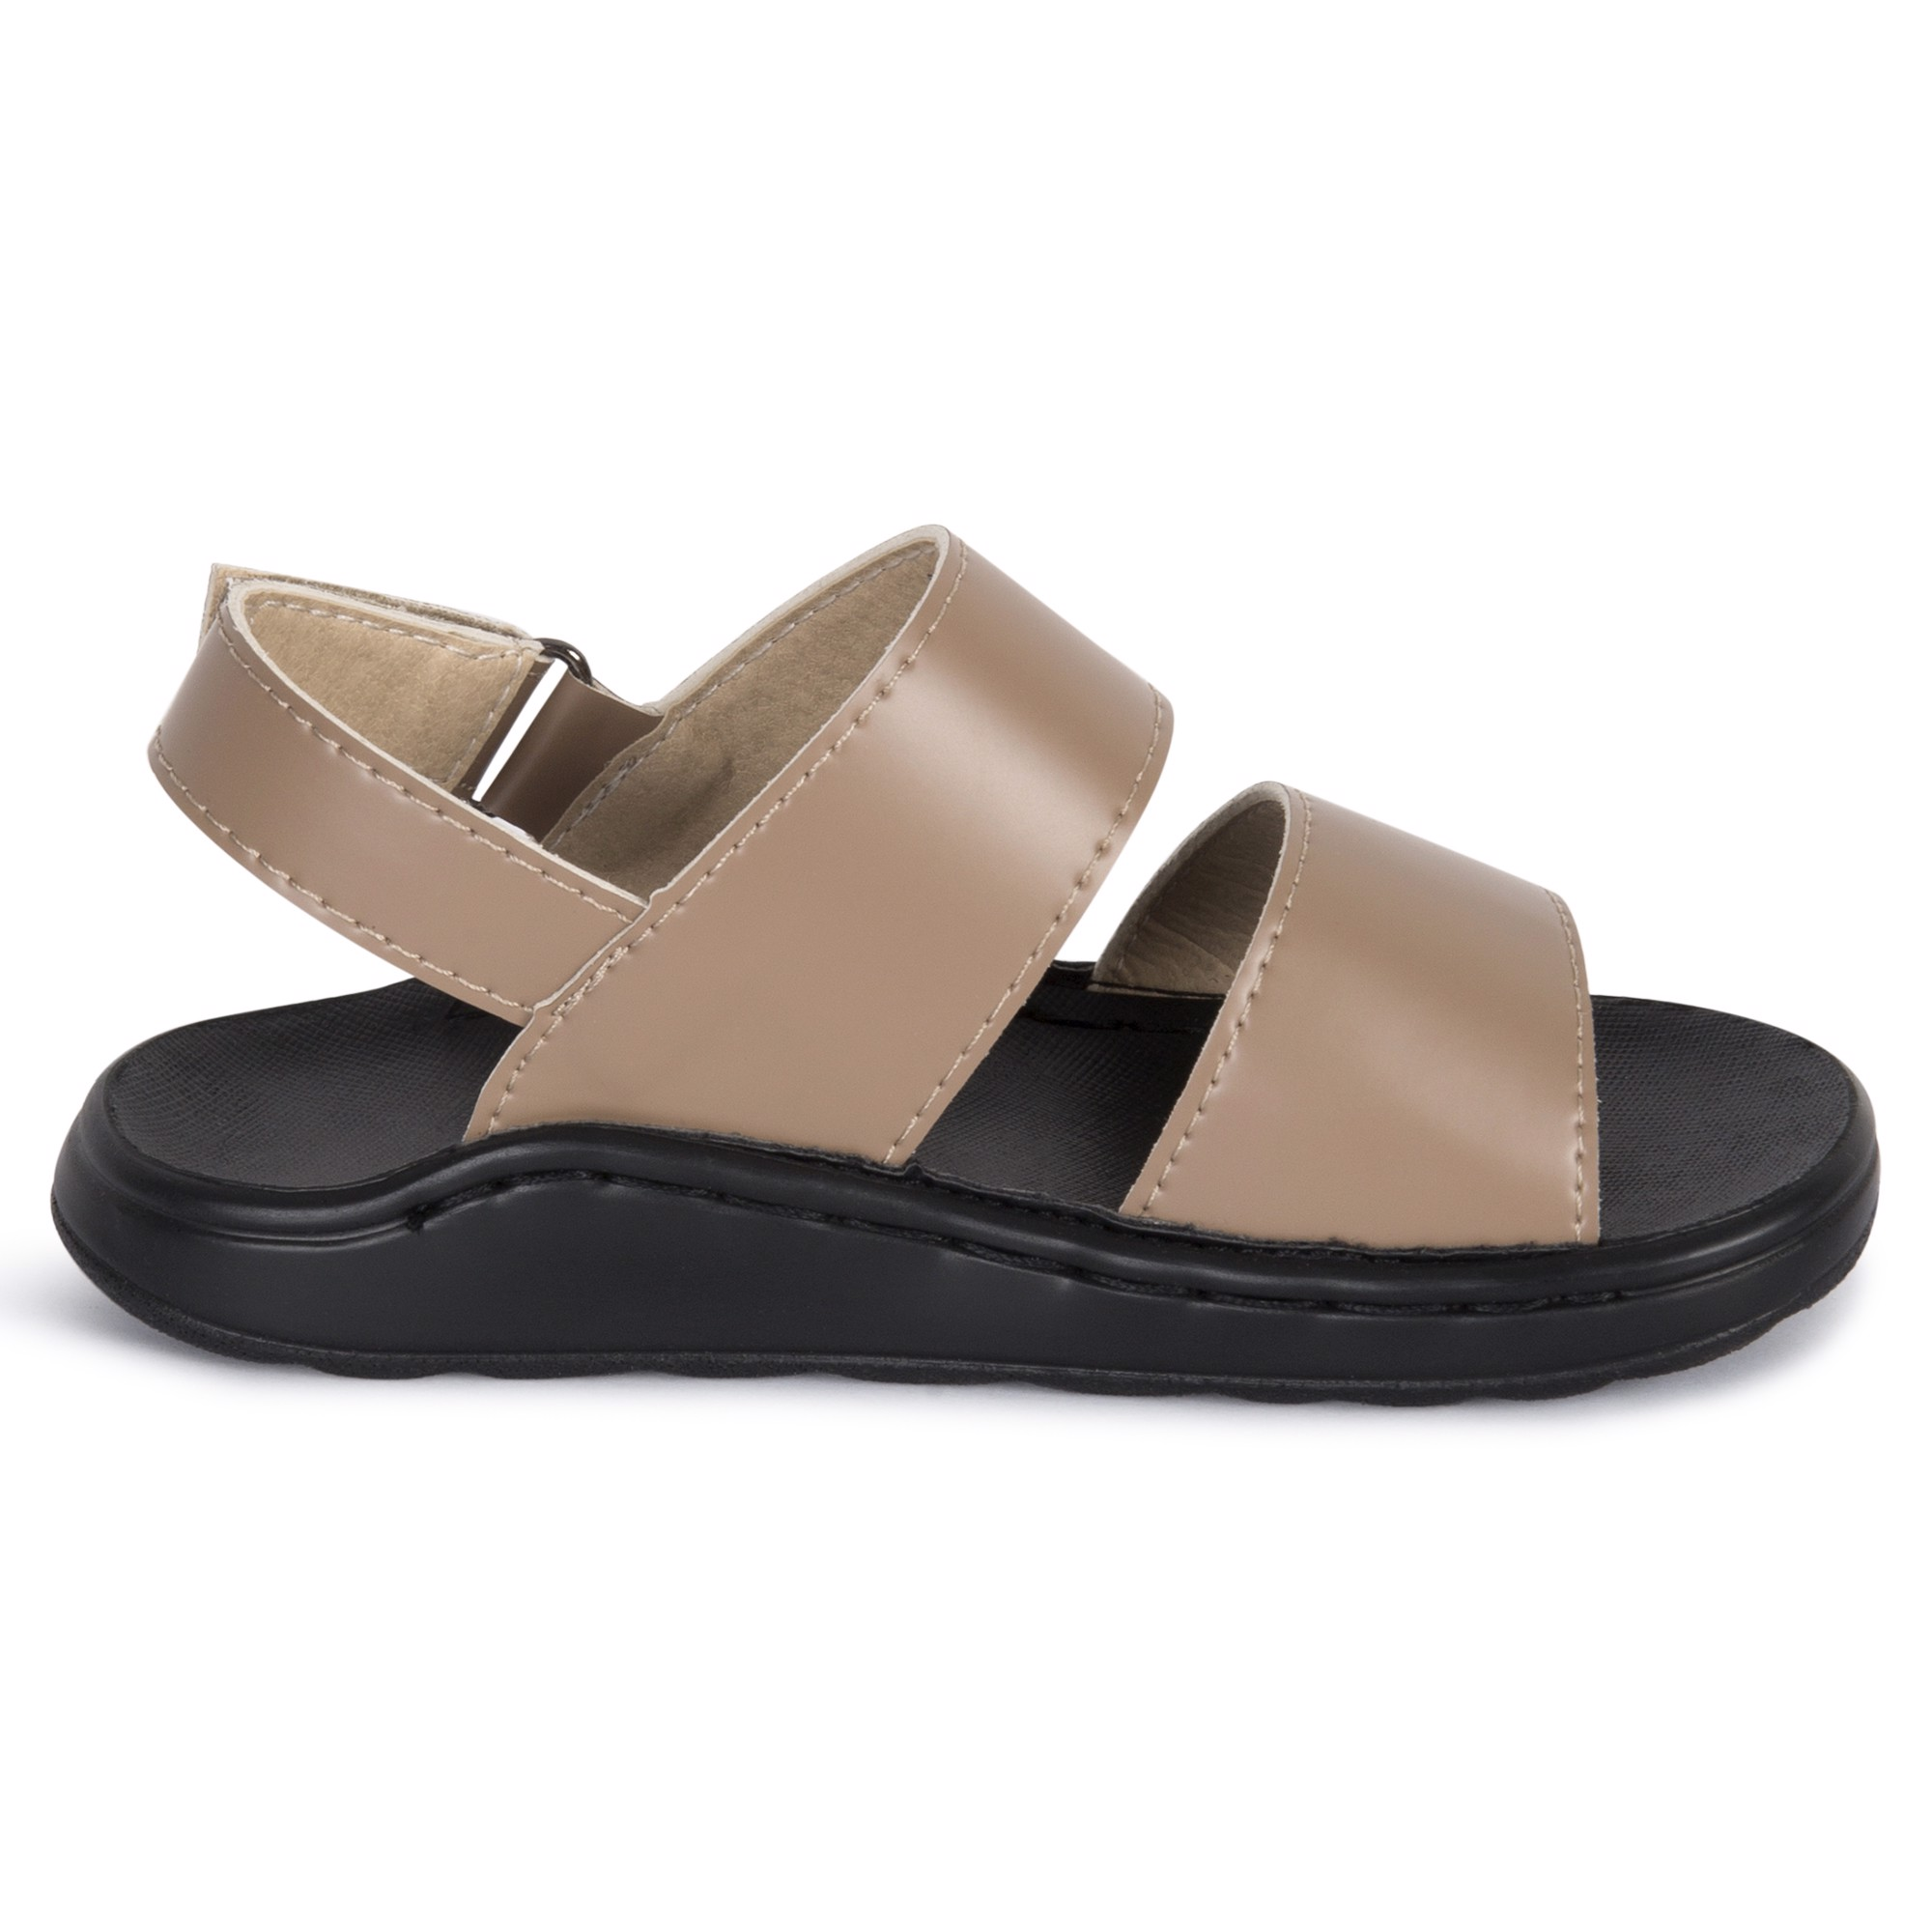 CrownUK London Fashion Sandals CRUK646